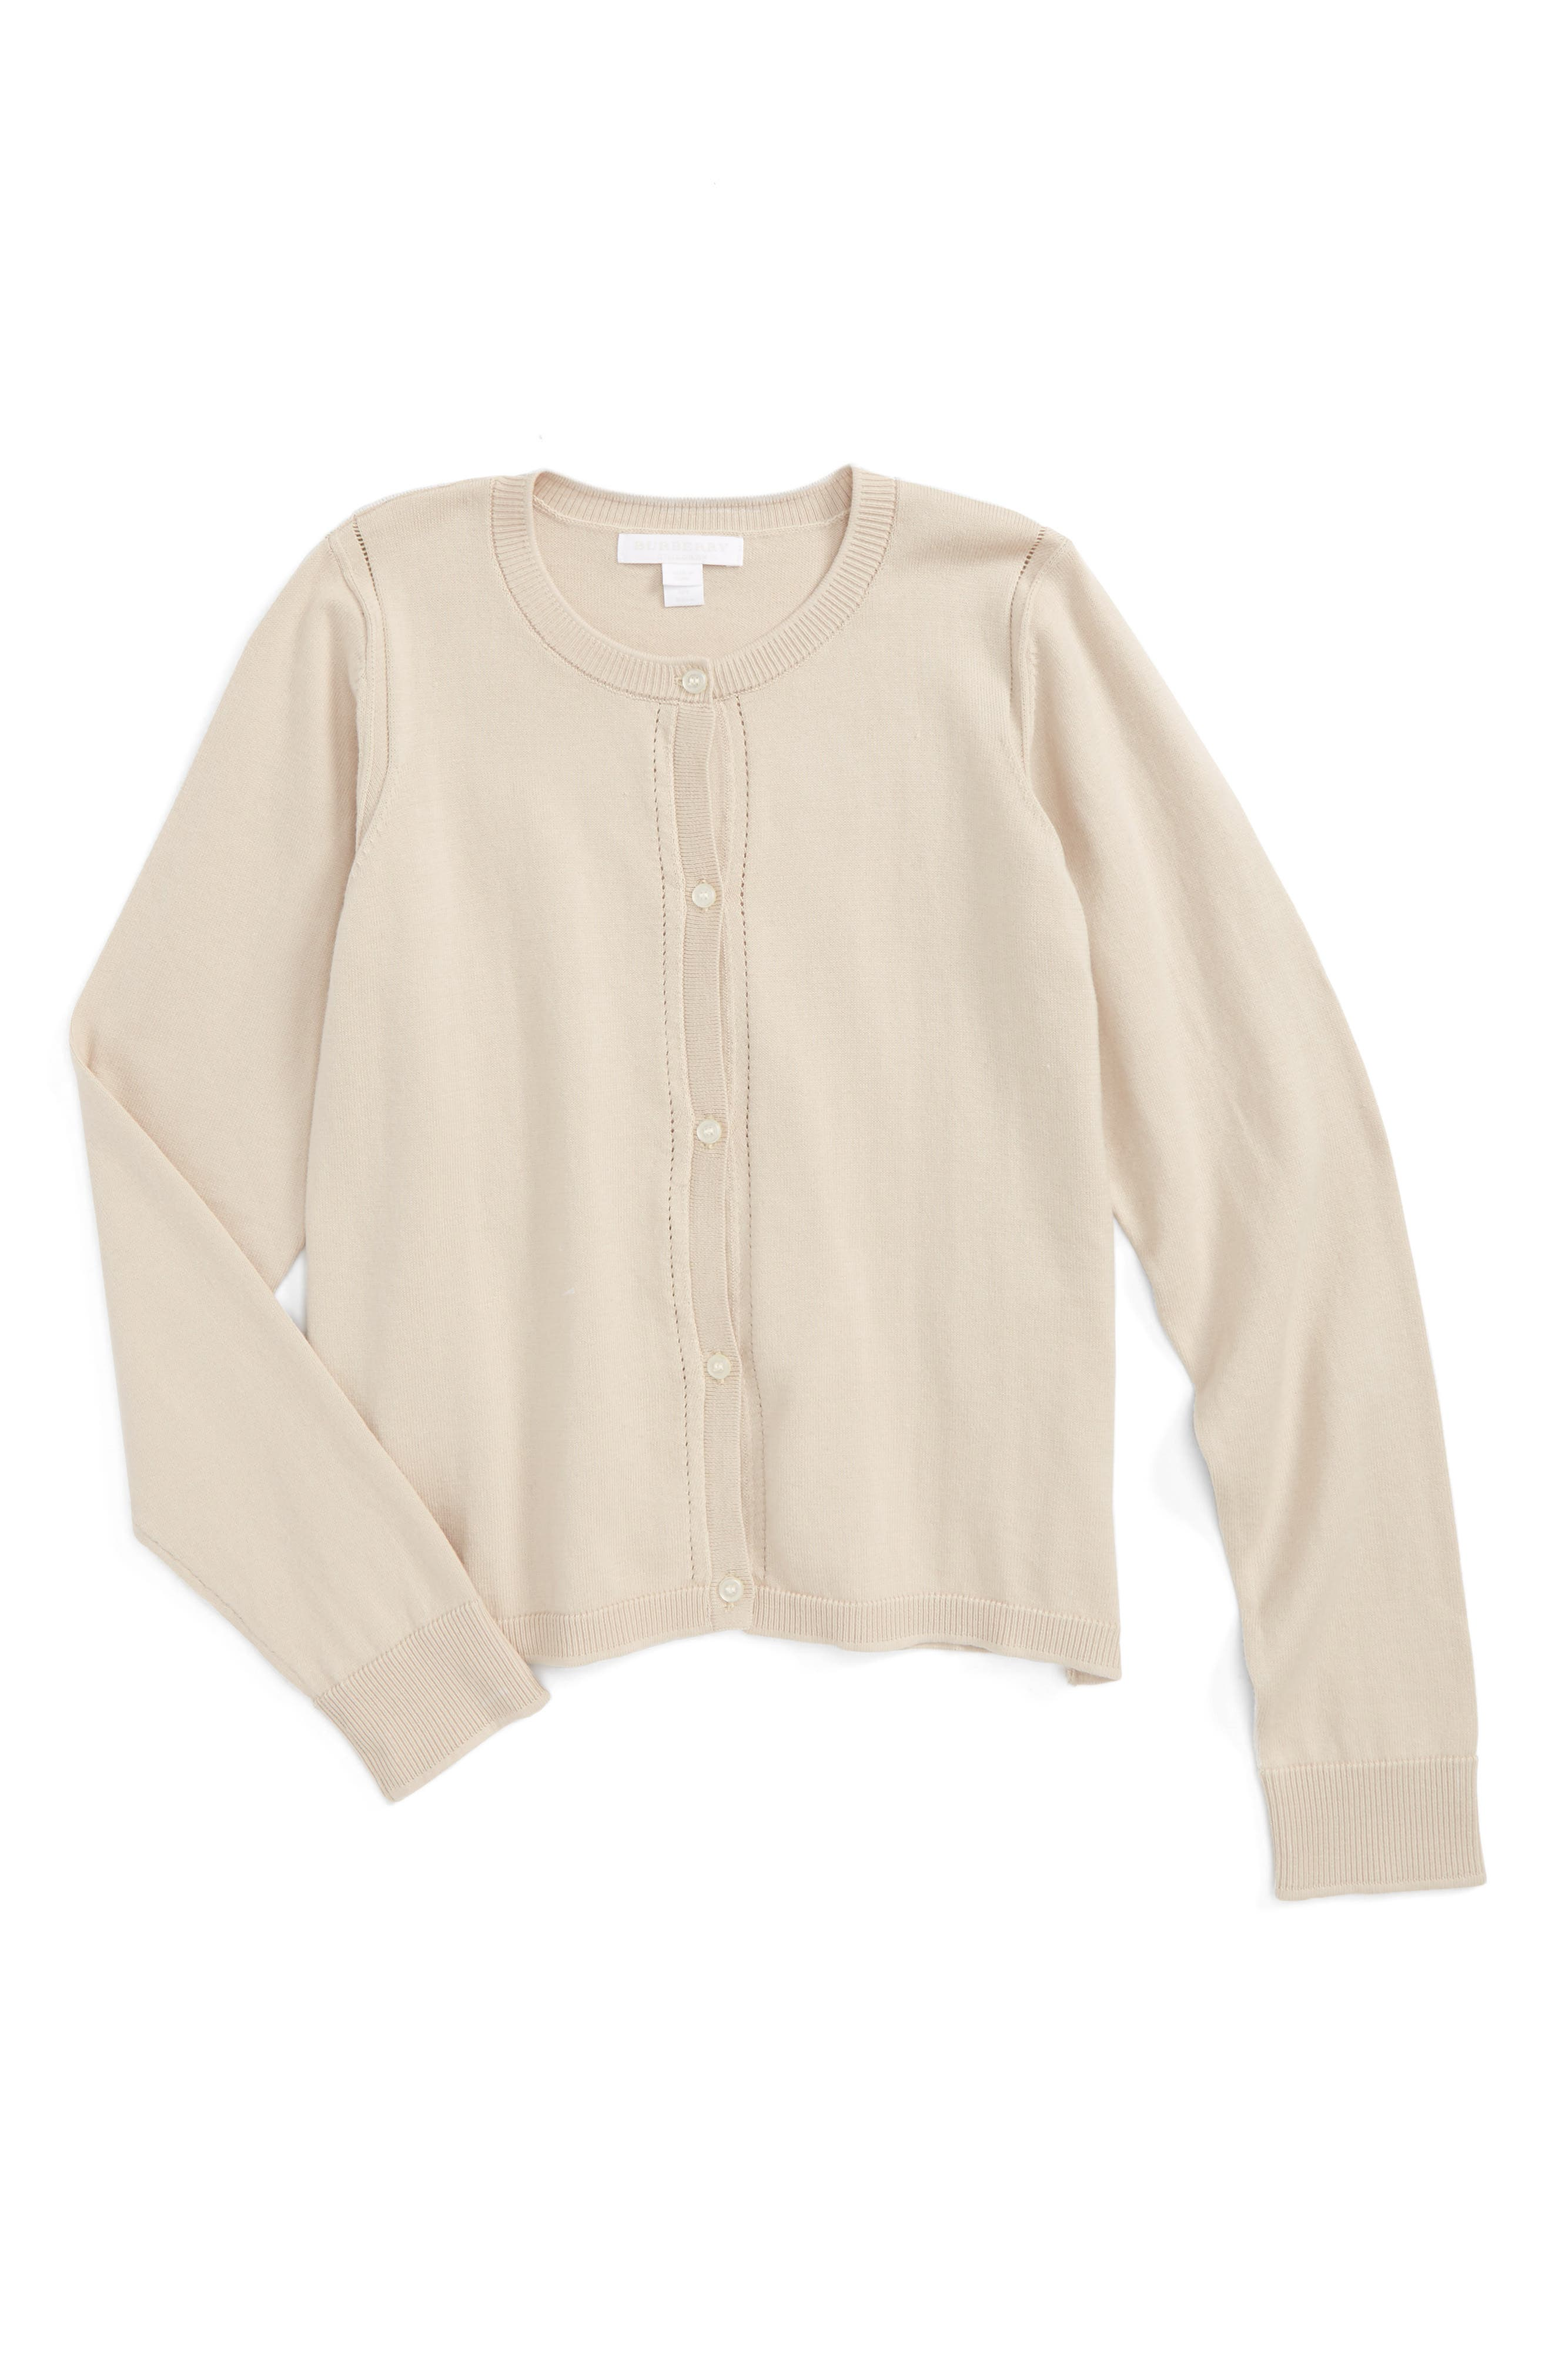 Burberry Rheta Cardigan (Little Girls & Big Girls)